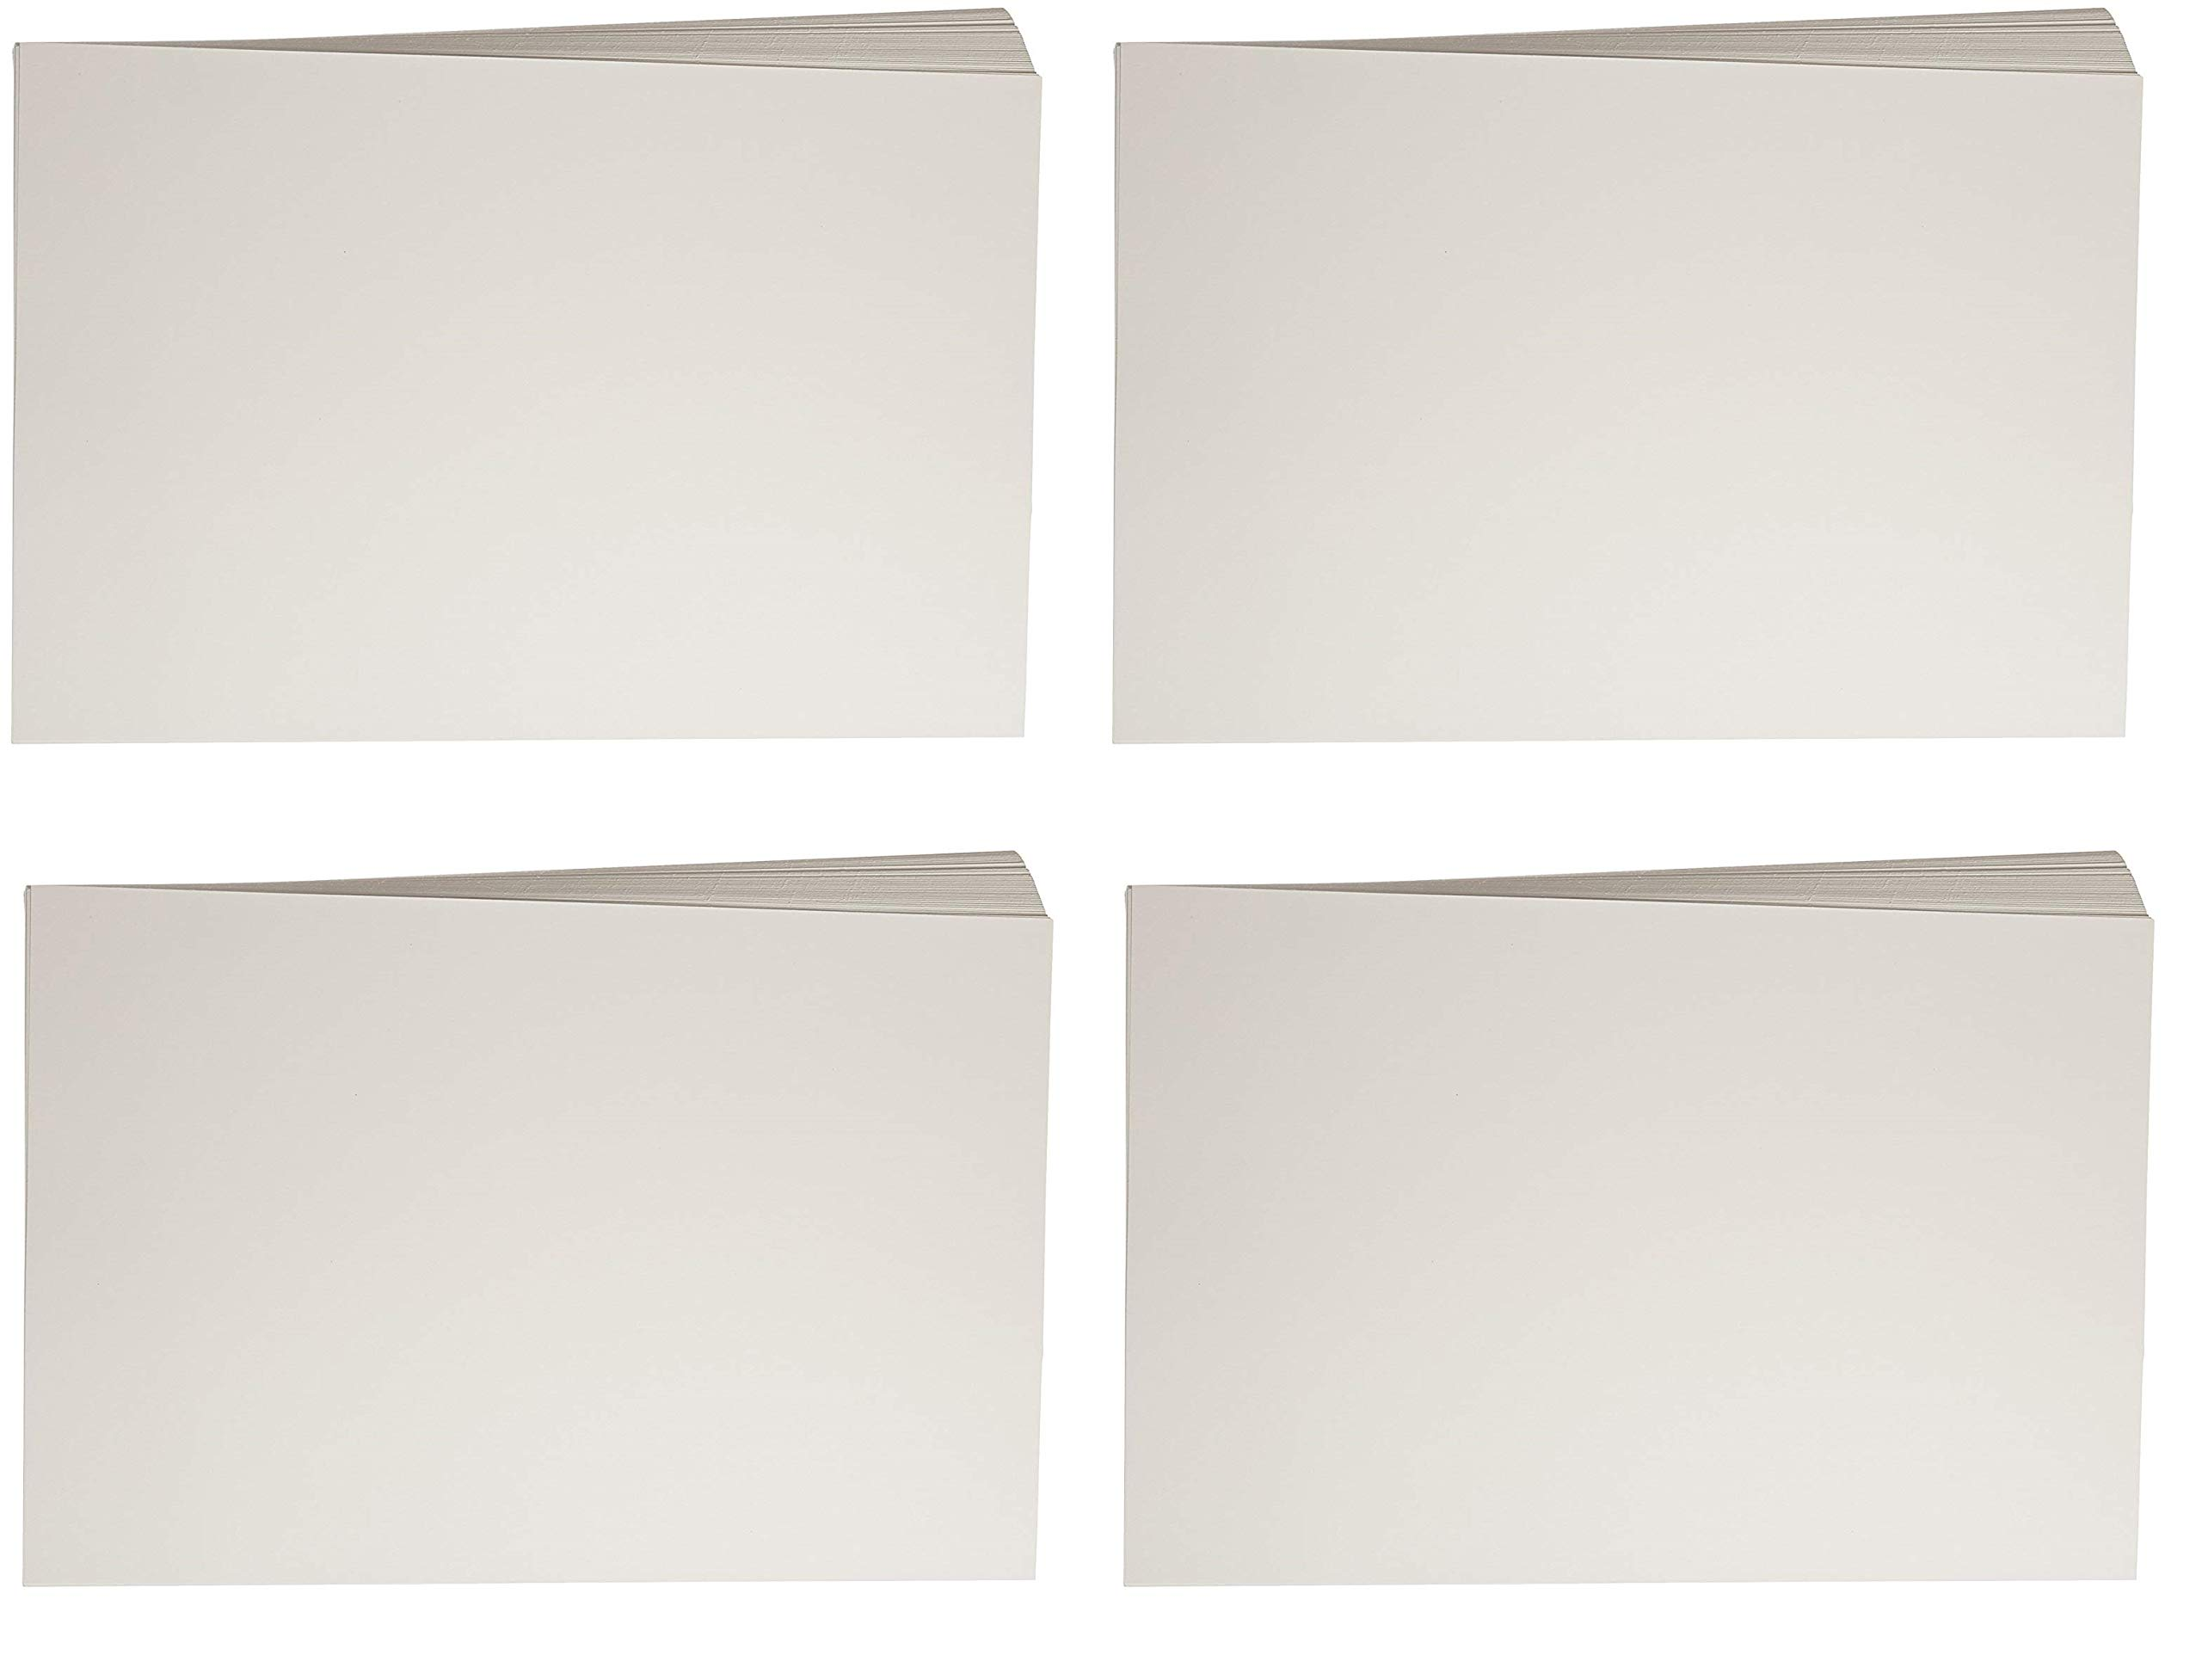 Sax Watercolor Beginner Paper, 90 lbs, 12 x 18 Inches, Natural White (4 X Pack of 100)